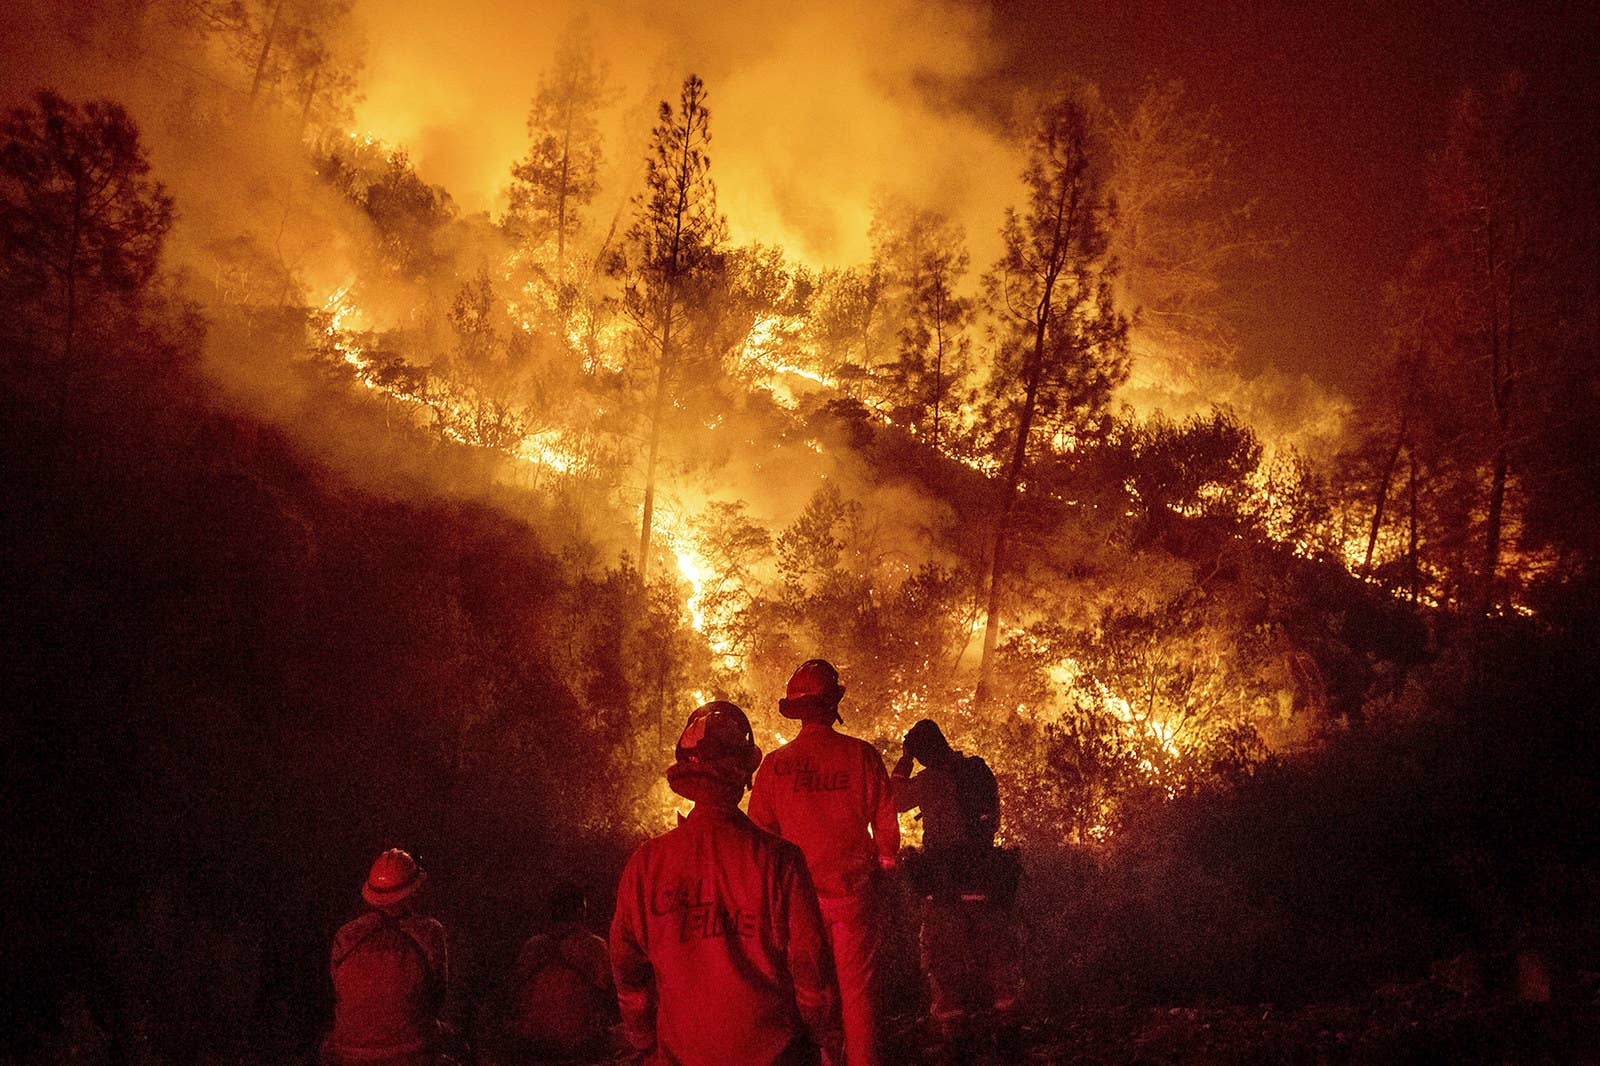 Firefighters monitor a backfire while battling the Ranch fire in Northern California, Aug. 7.